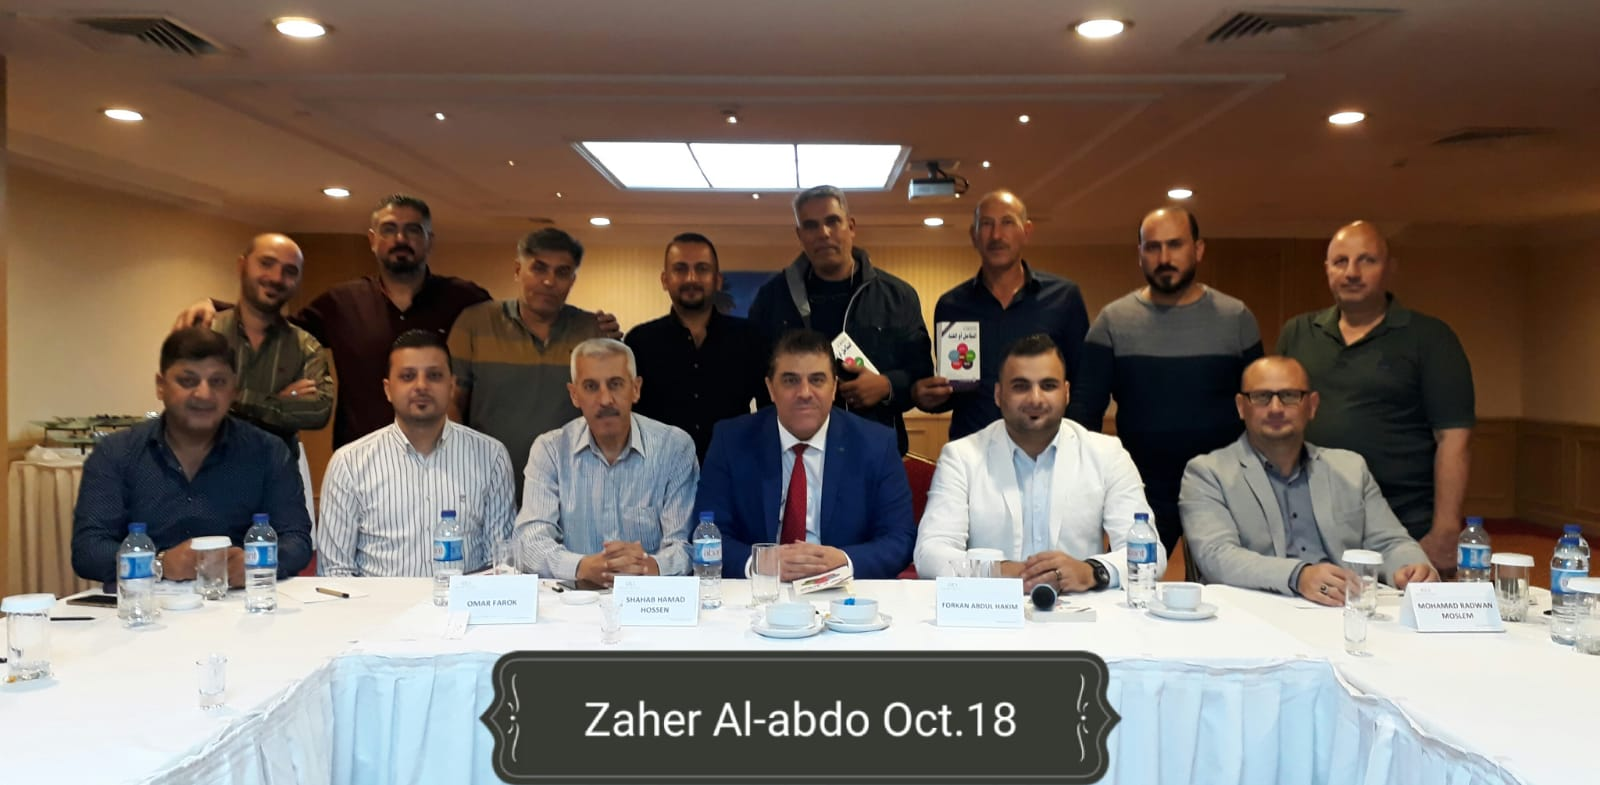 Zaher Alabdo2018-10-13 planing and production